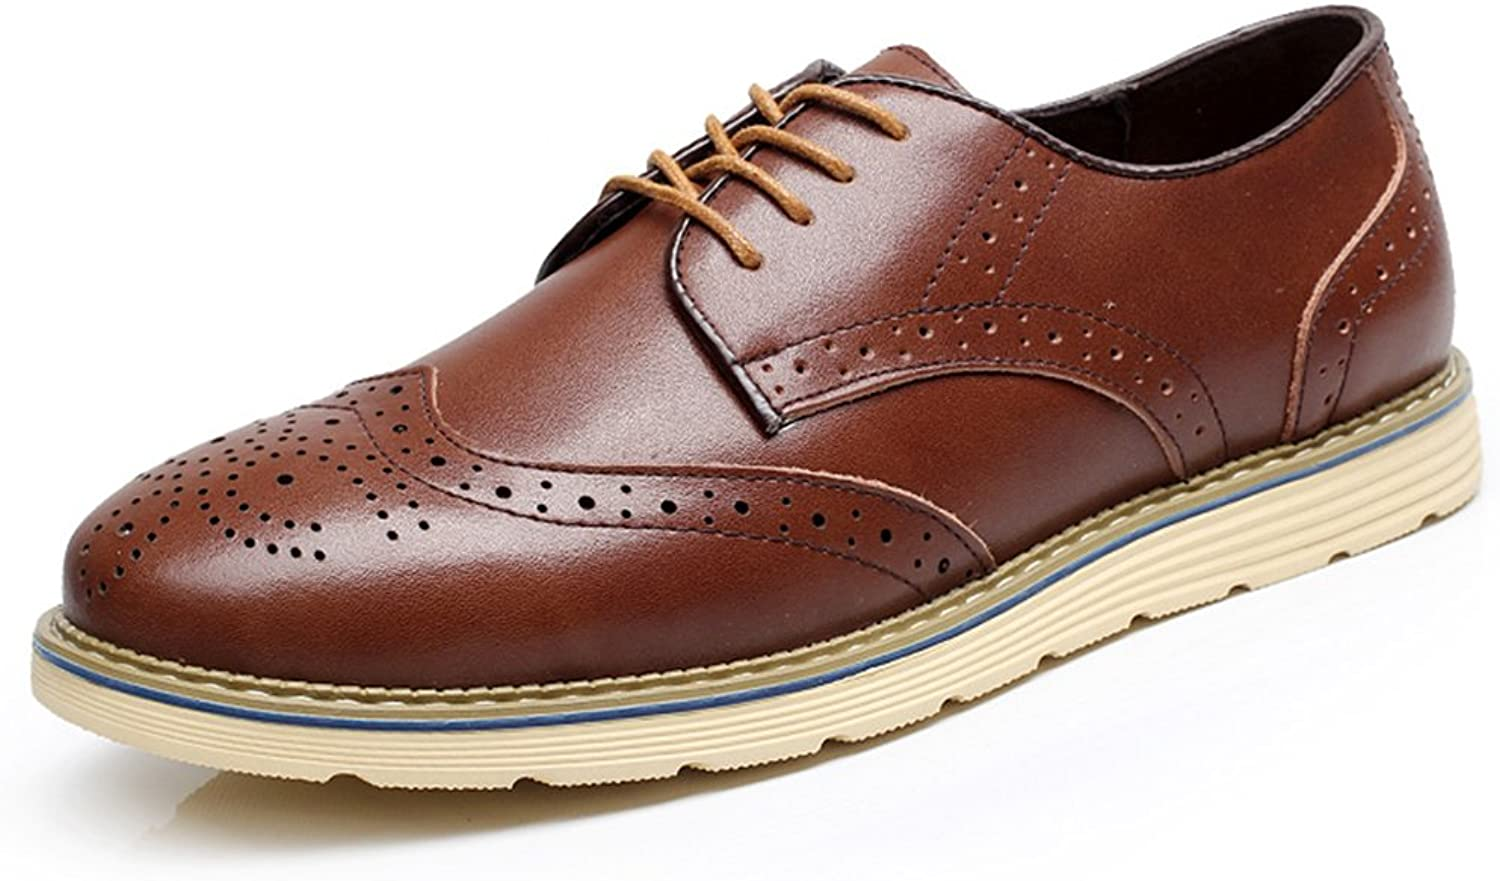 Beinfaith Men's Genuine Leather Oxfords Brogues Flats shoes Lace-ups